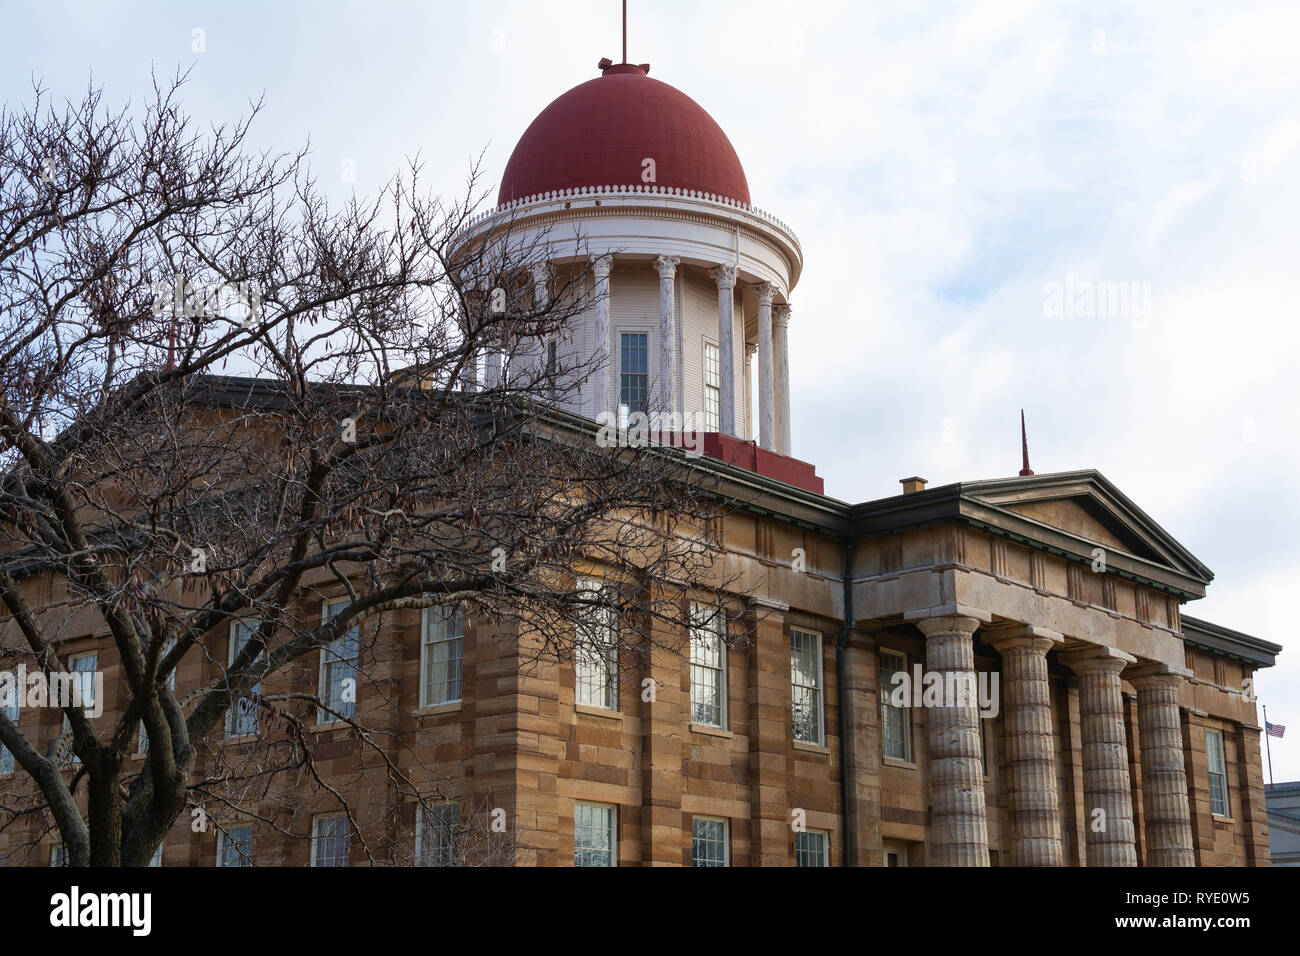 Exterior of the Old Capitol Building on a Spring morning.  Springfield, Illinois, USA. Stock Photo